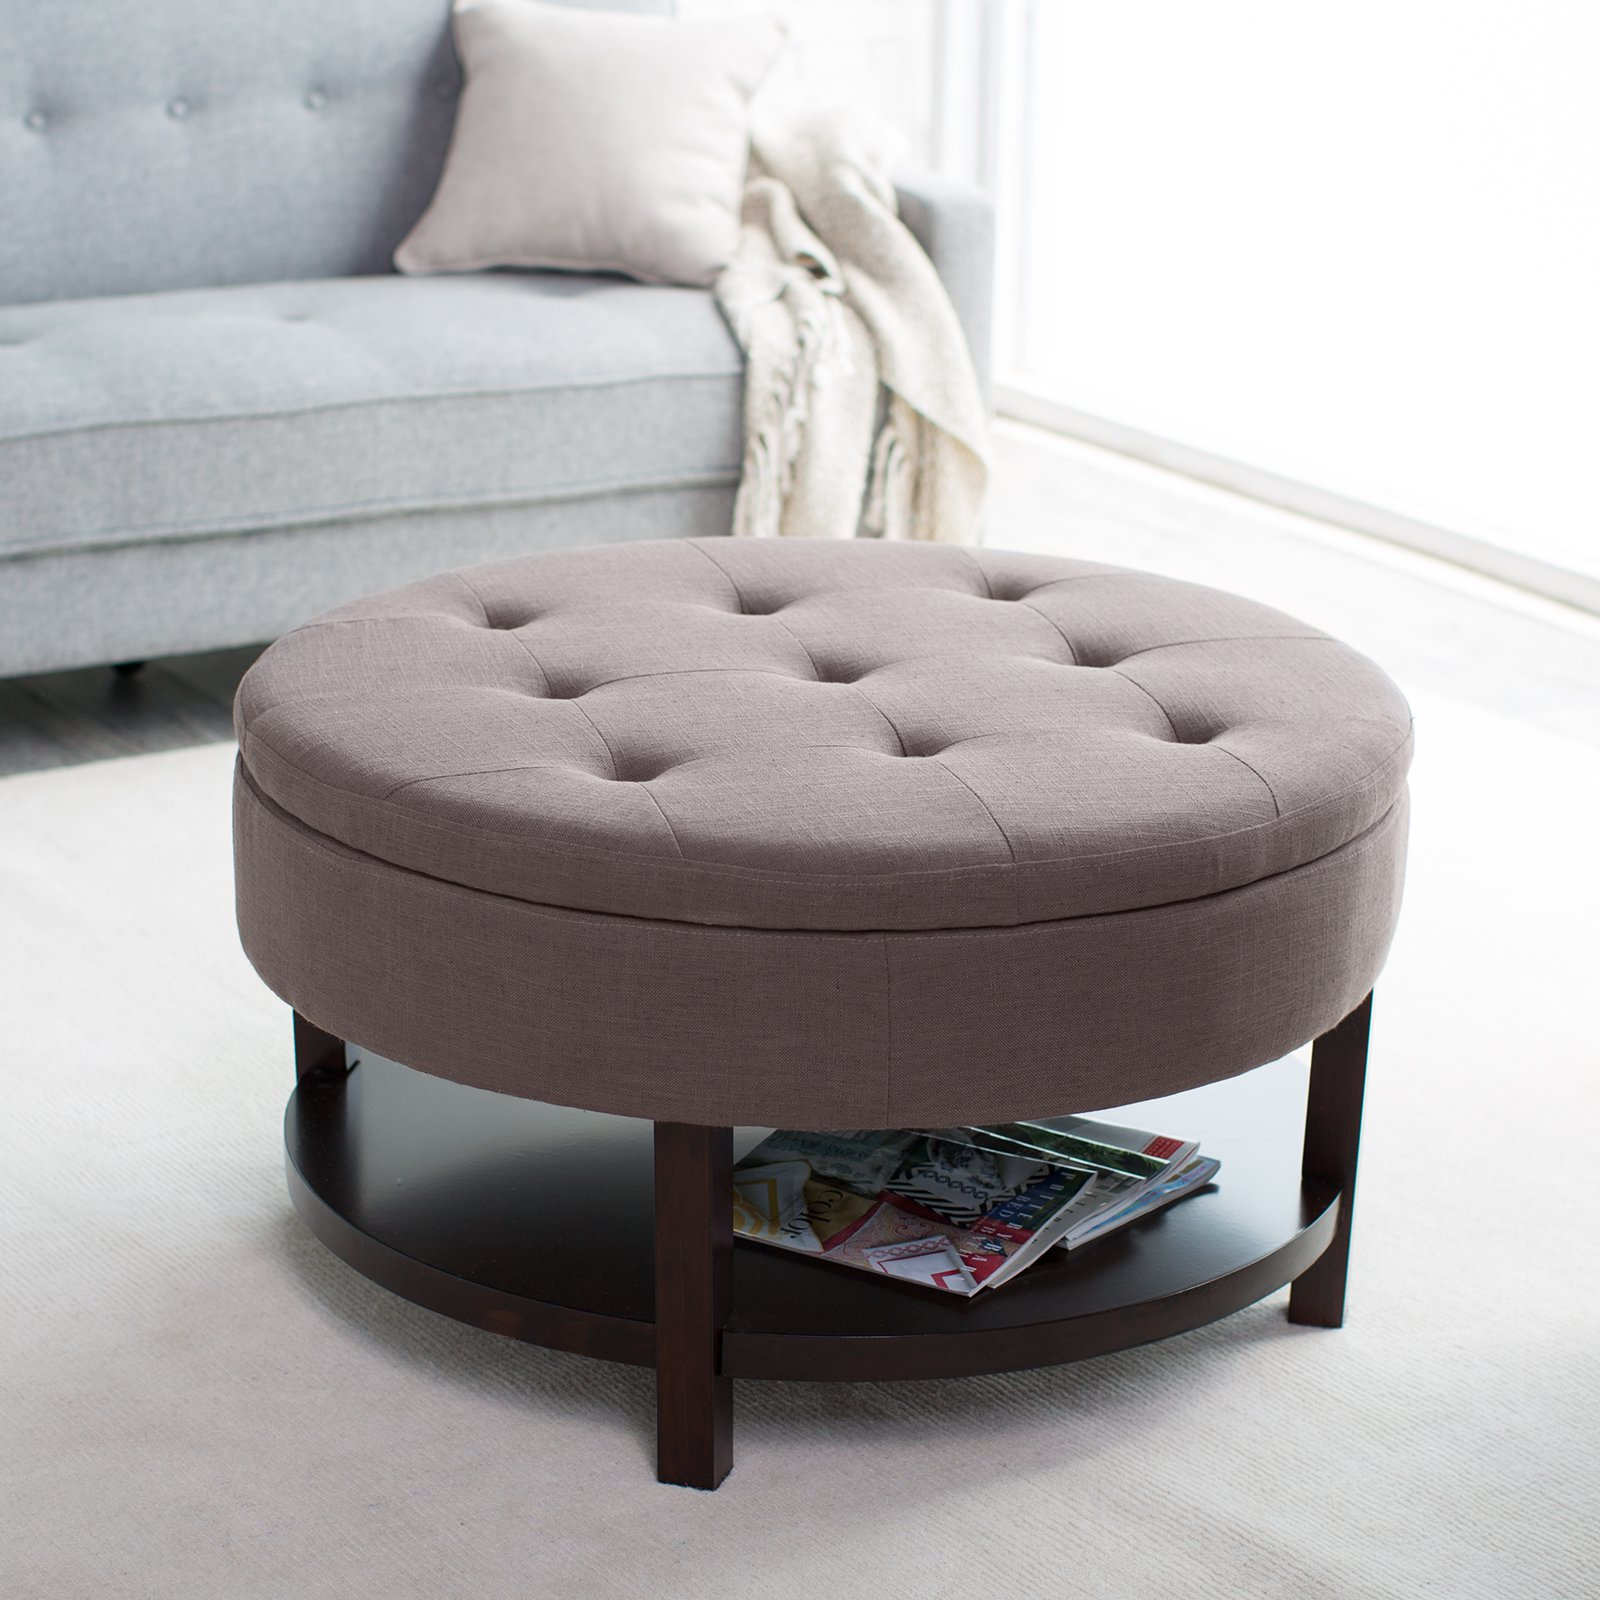 Round Padded Coffee Table Elegant Grey Round Ottoman With Upholstered Style Suitable Contemporary Living Room Design With Also Inexpensive Furniture (View 5 of 10)